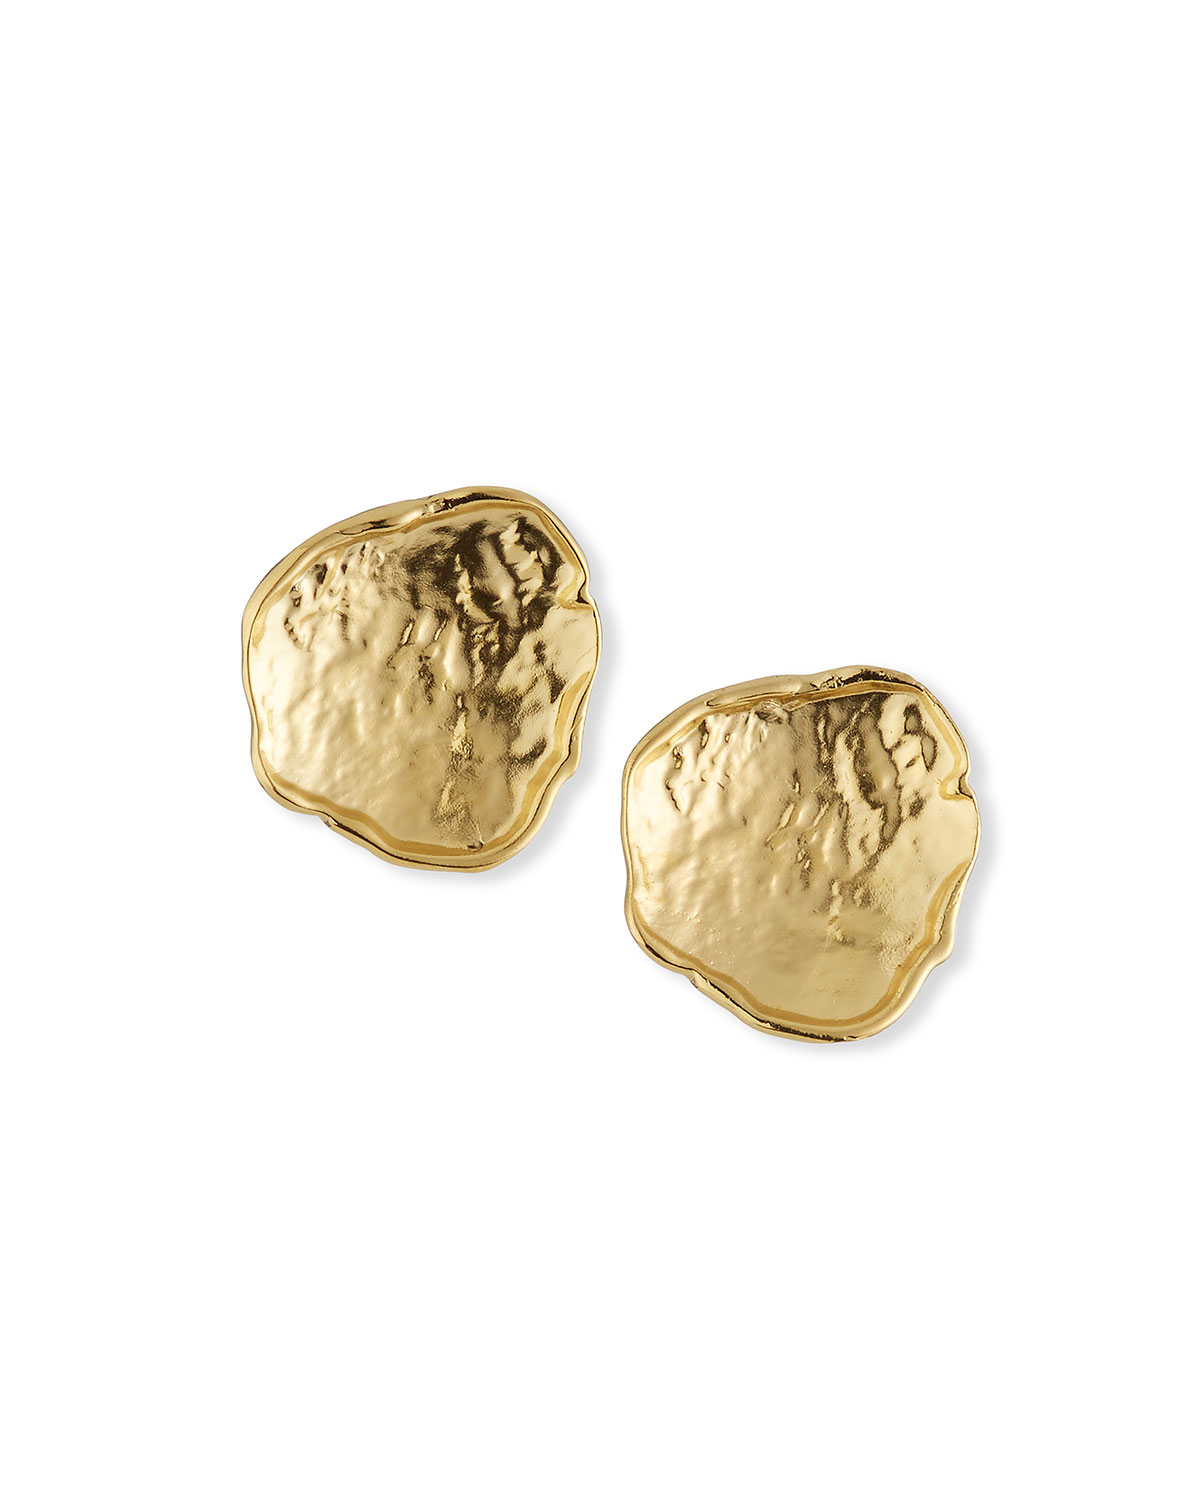 Free Form Gold Post Earrings